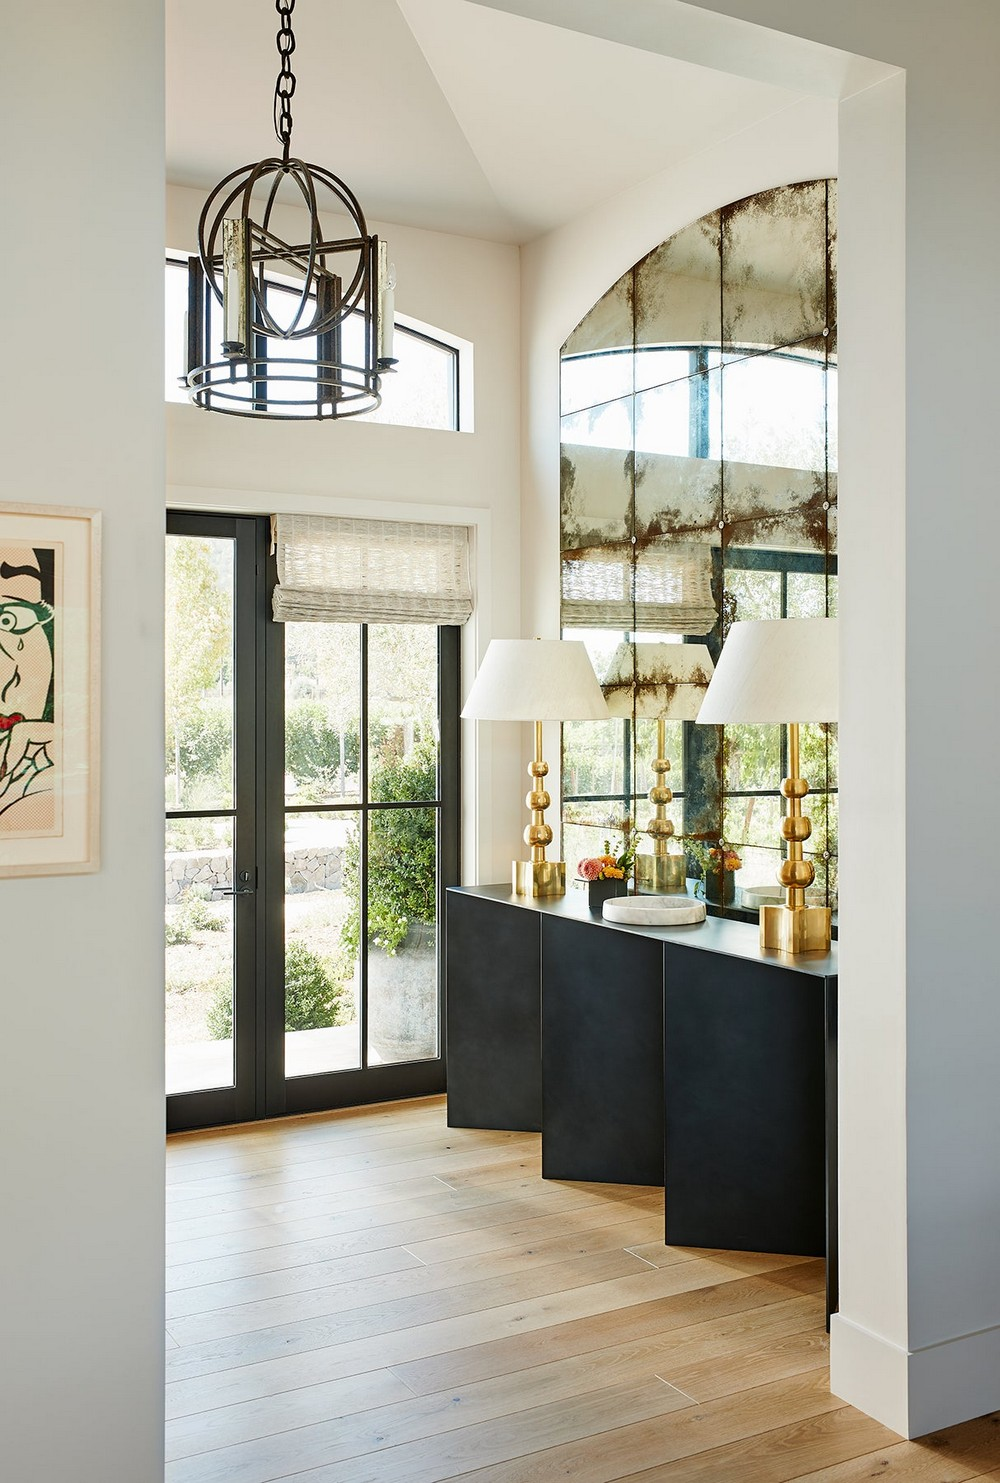 Contemplate a Series of Entryway Decor Ideas for a Bold Aesthetic 3 entryway decor Contemplate a Series of Entryway Decor Ideas for a Bold Aesthetic Contemplate a Series of Entryway Decor Ideas for a Bold Aesthetic 3